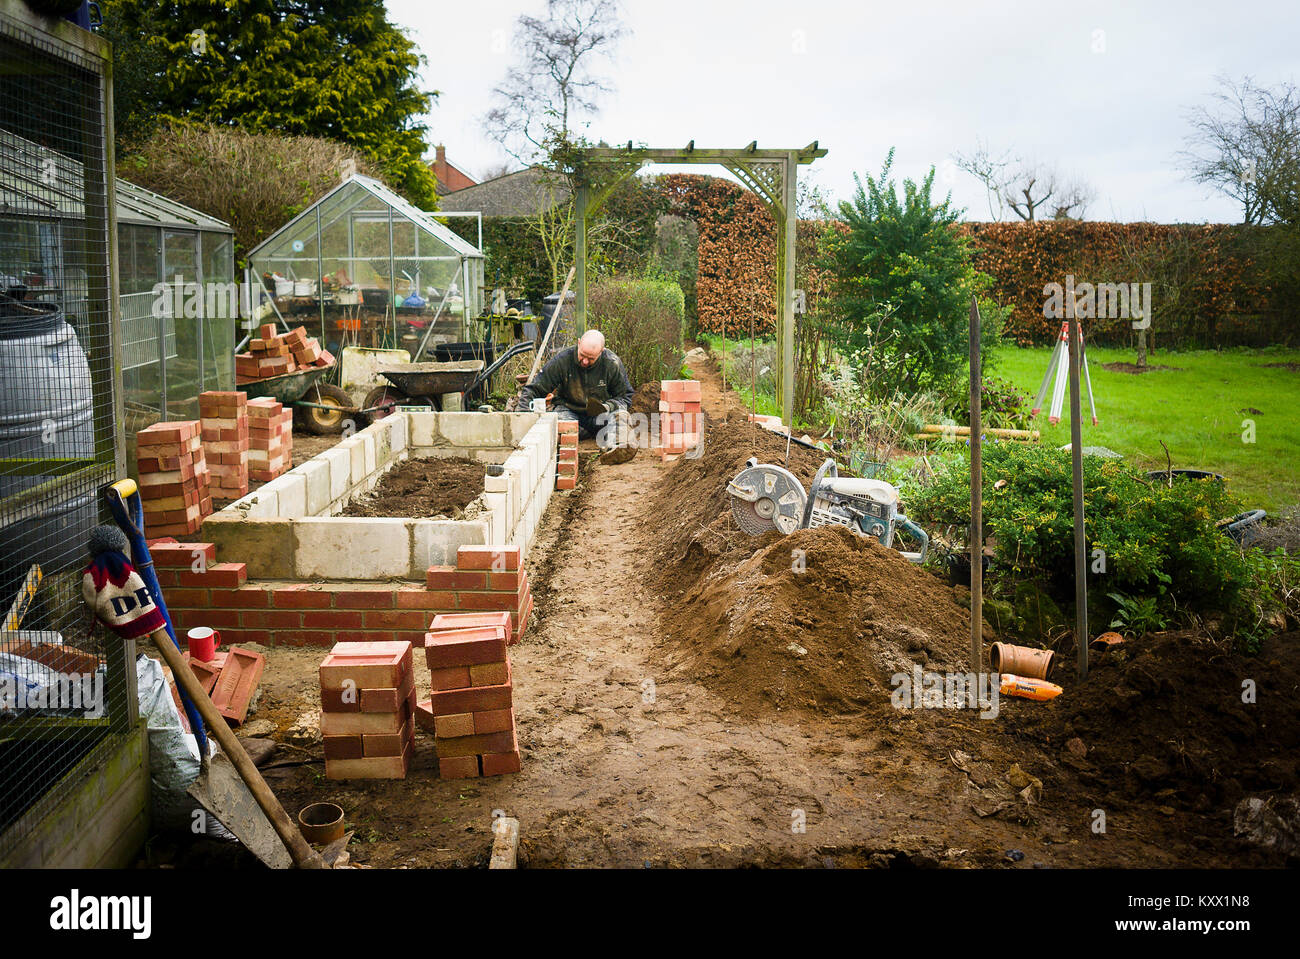 Builder constructing a replacement raised planter from blocks and bricks in late winter in UK - Stock Image